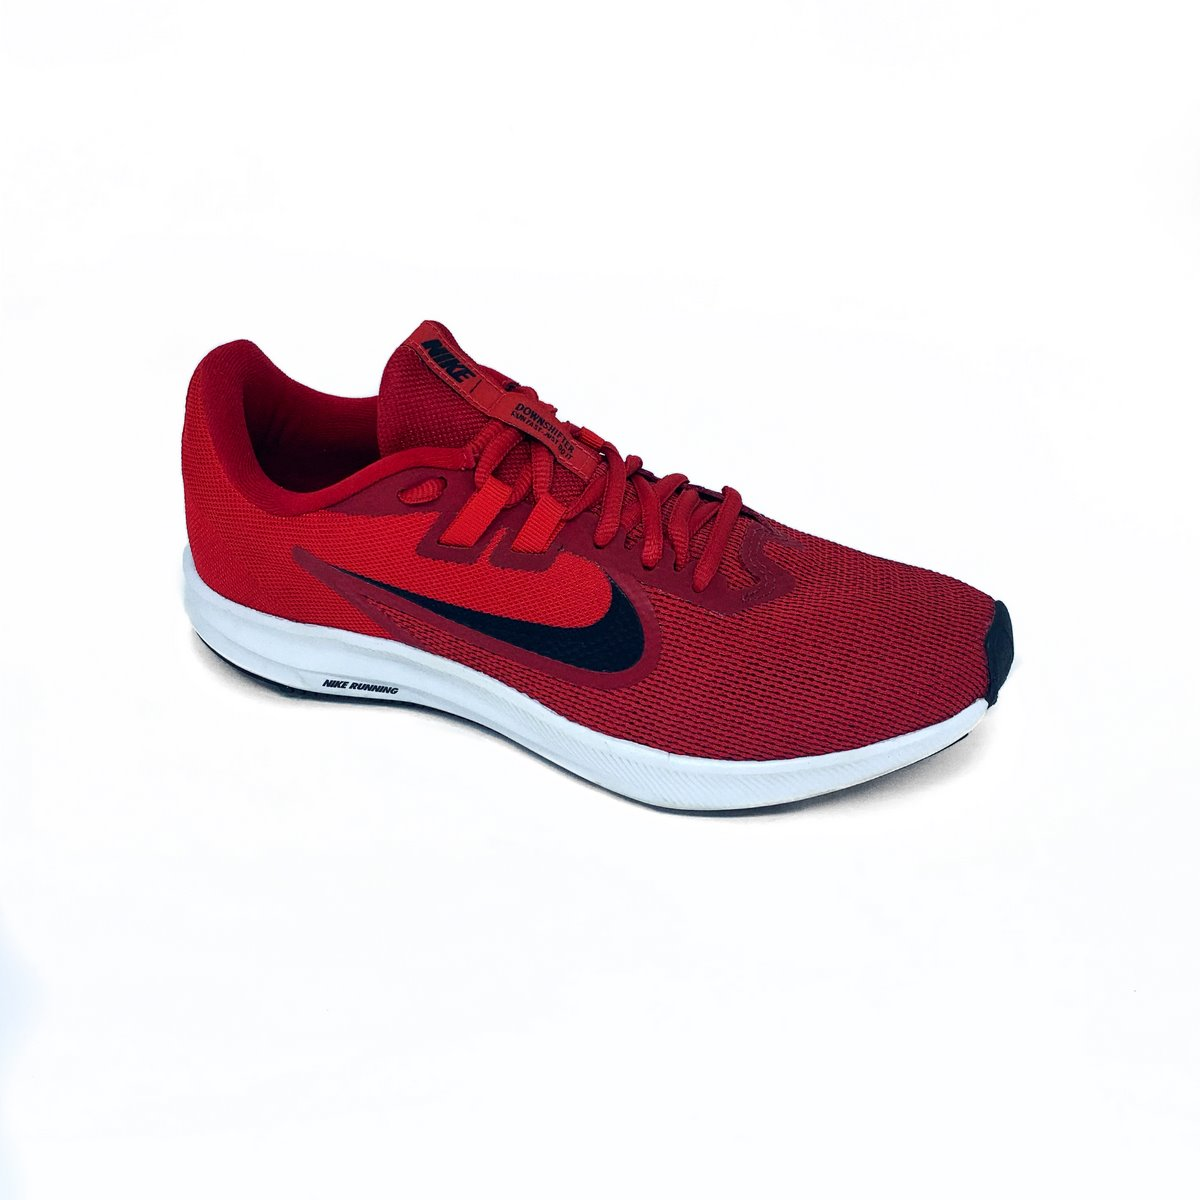 Tênis Nike DownShifter 9 Red/Black